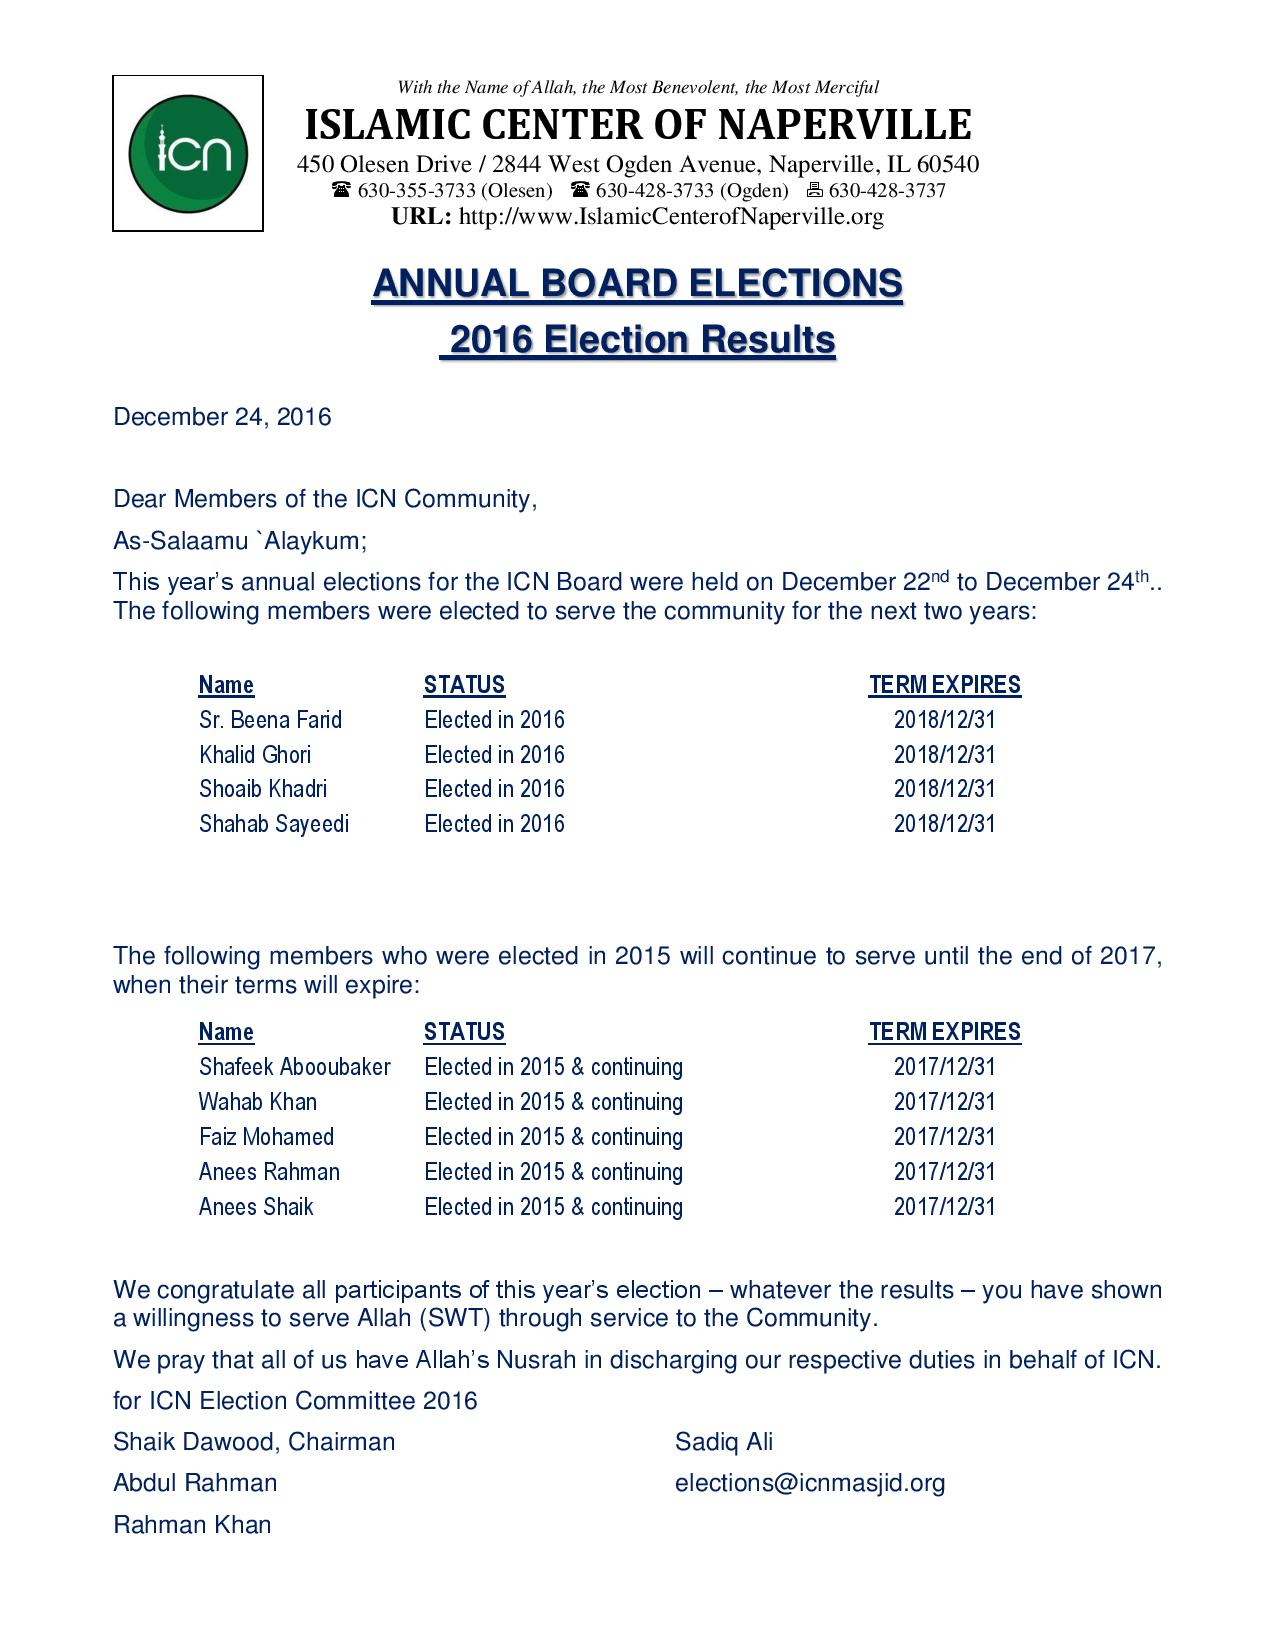 board-elections-results-2016